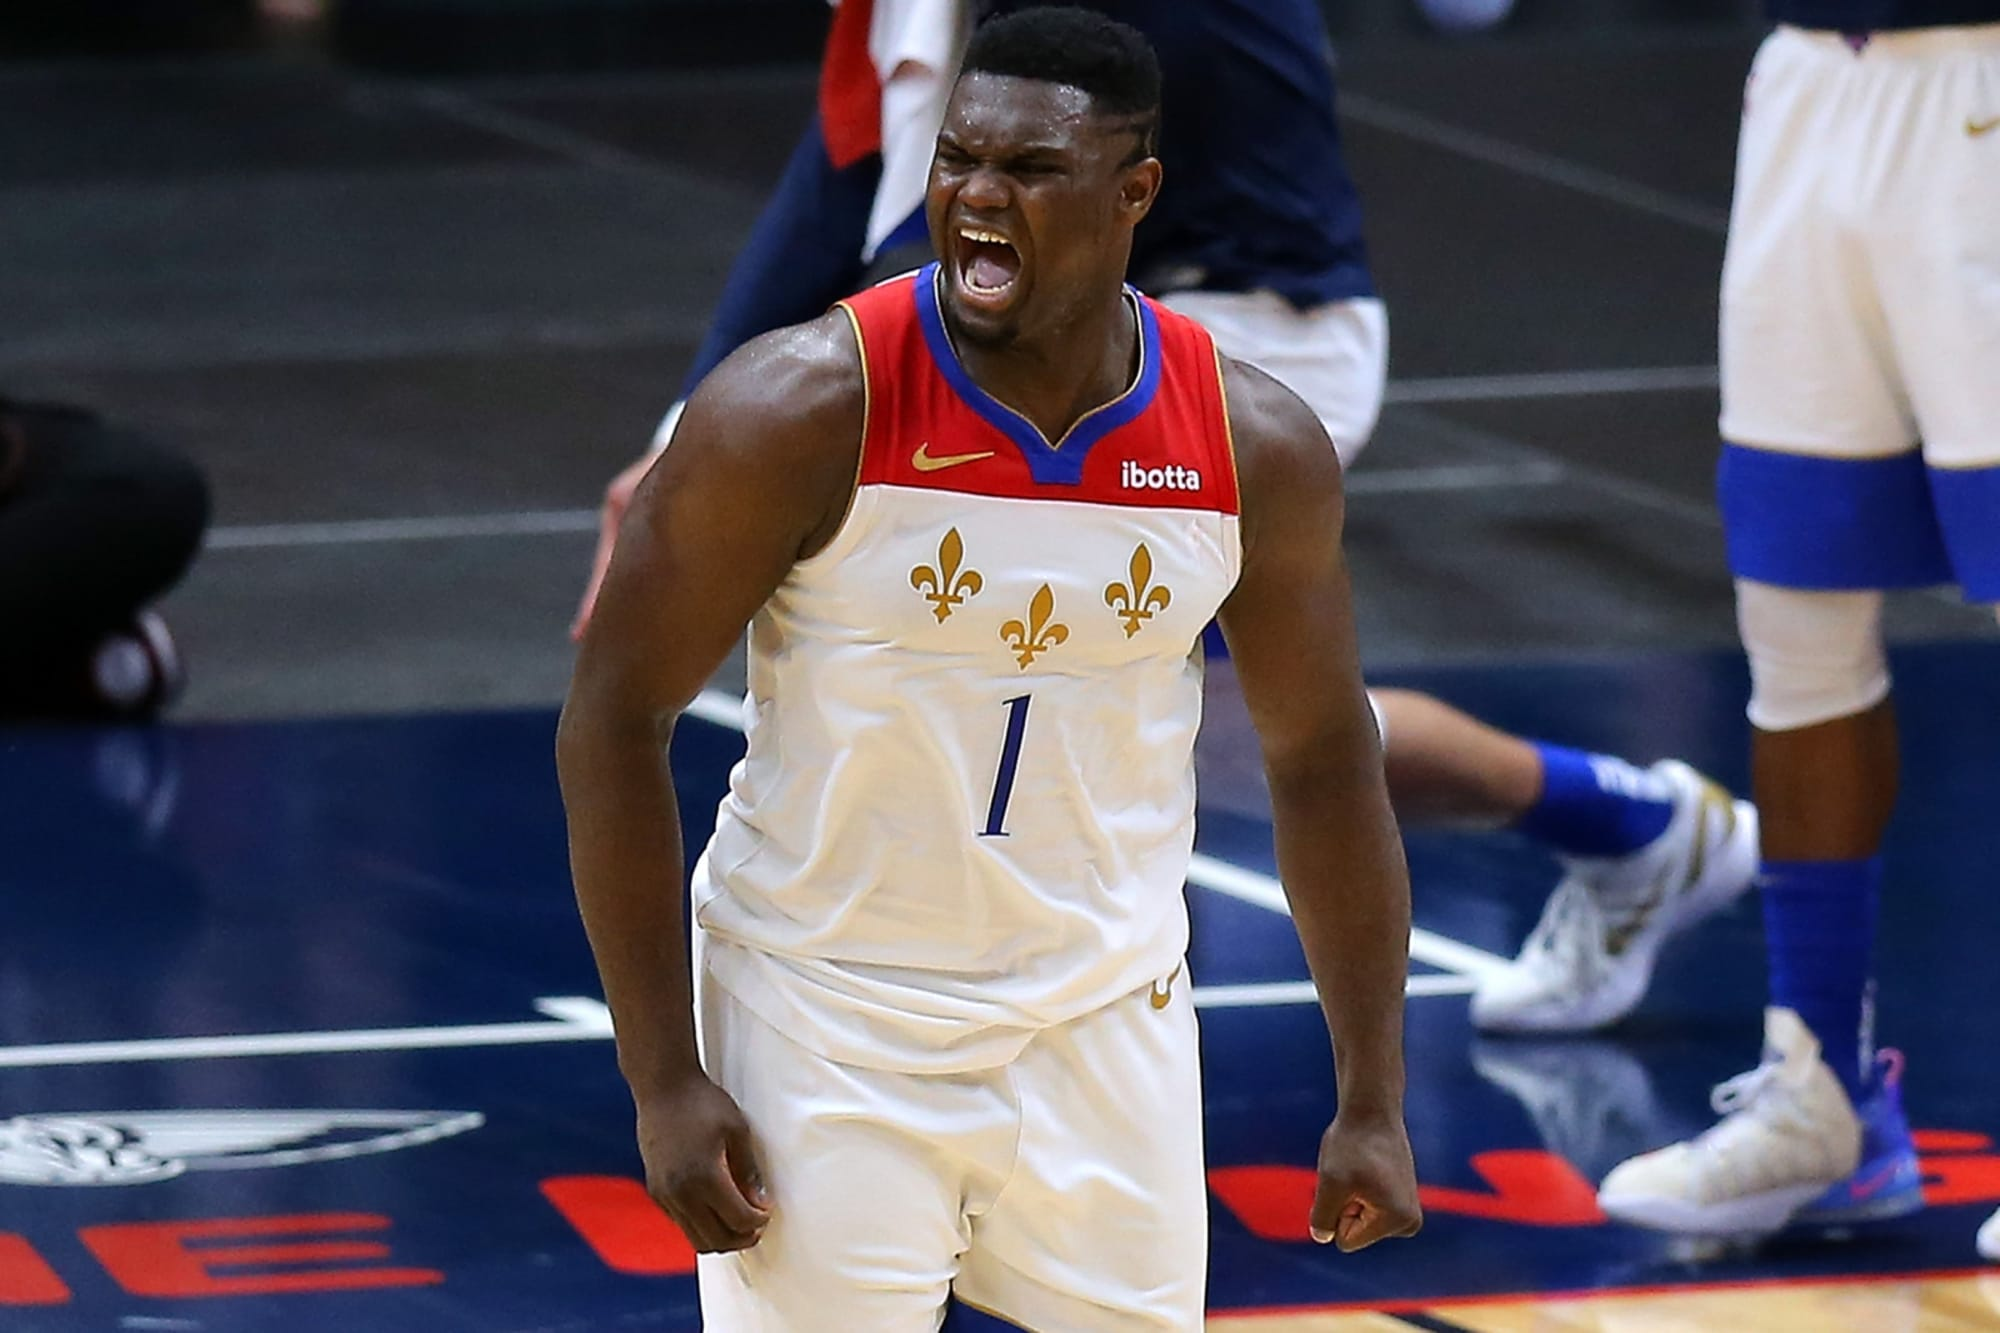 Zion Williamson was not a snub for the All-NBA team